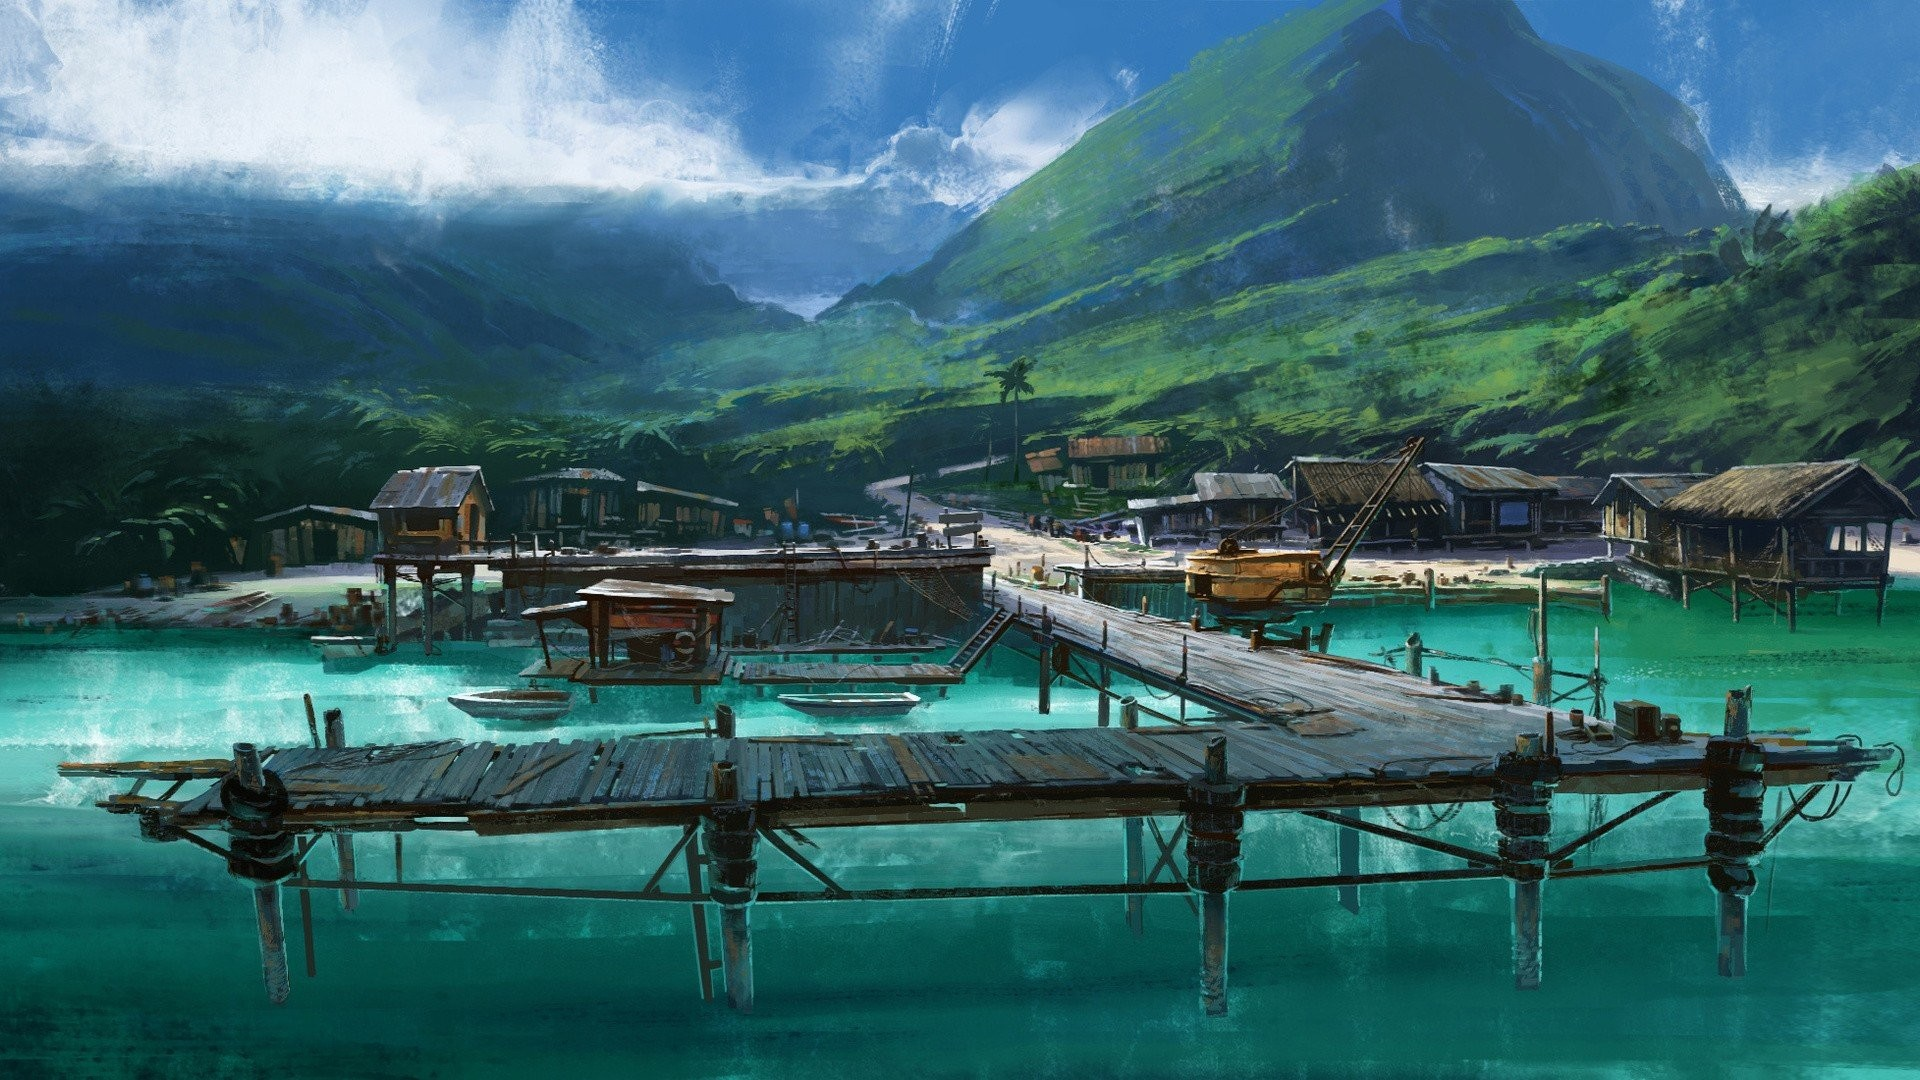 1920x1080 Artwork Boats Dock Drawings Far Cry 3 Landscapes Mountains Sea Tropical  Vehicles